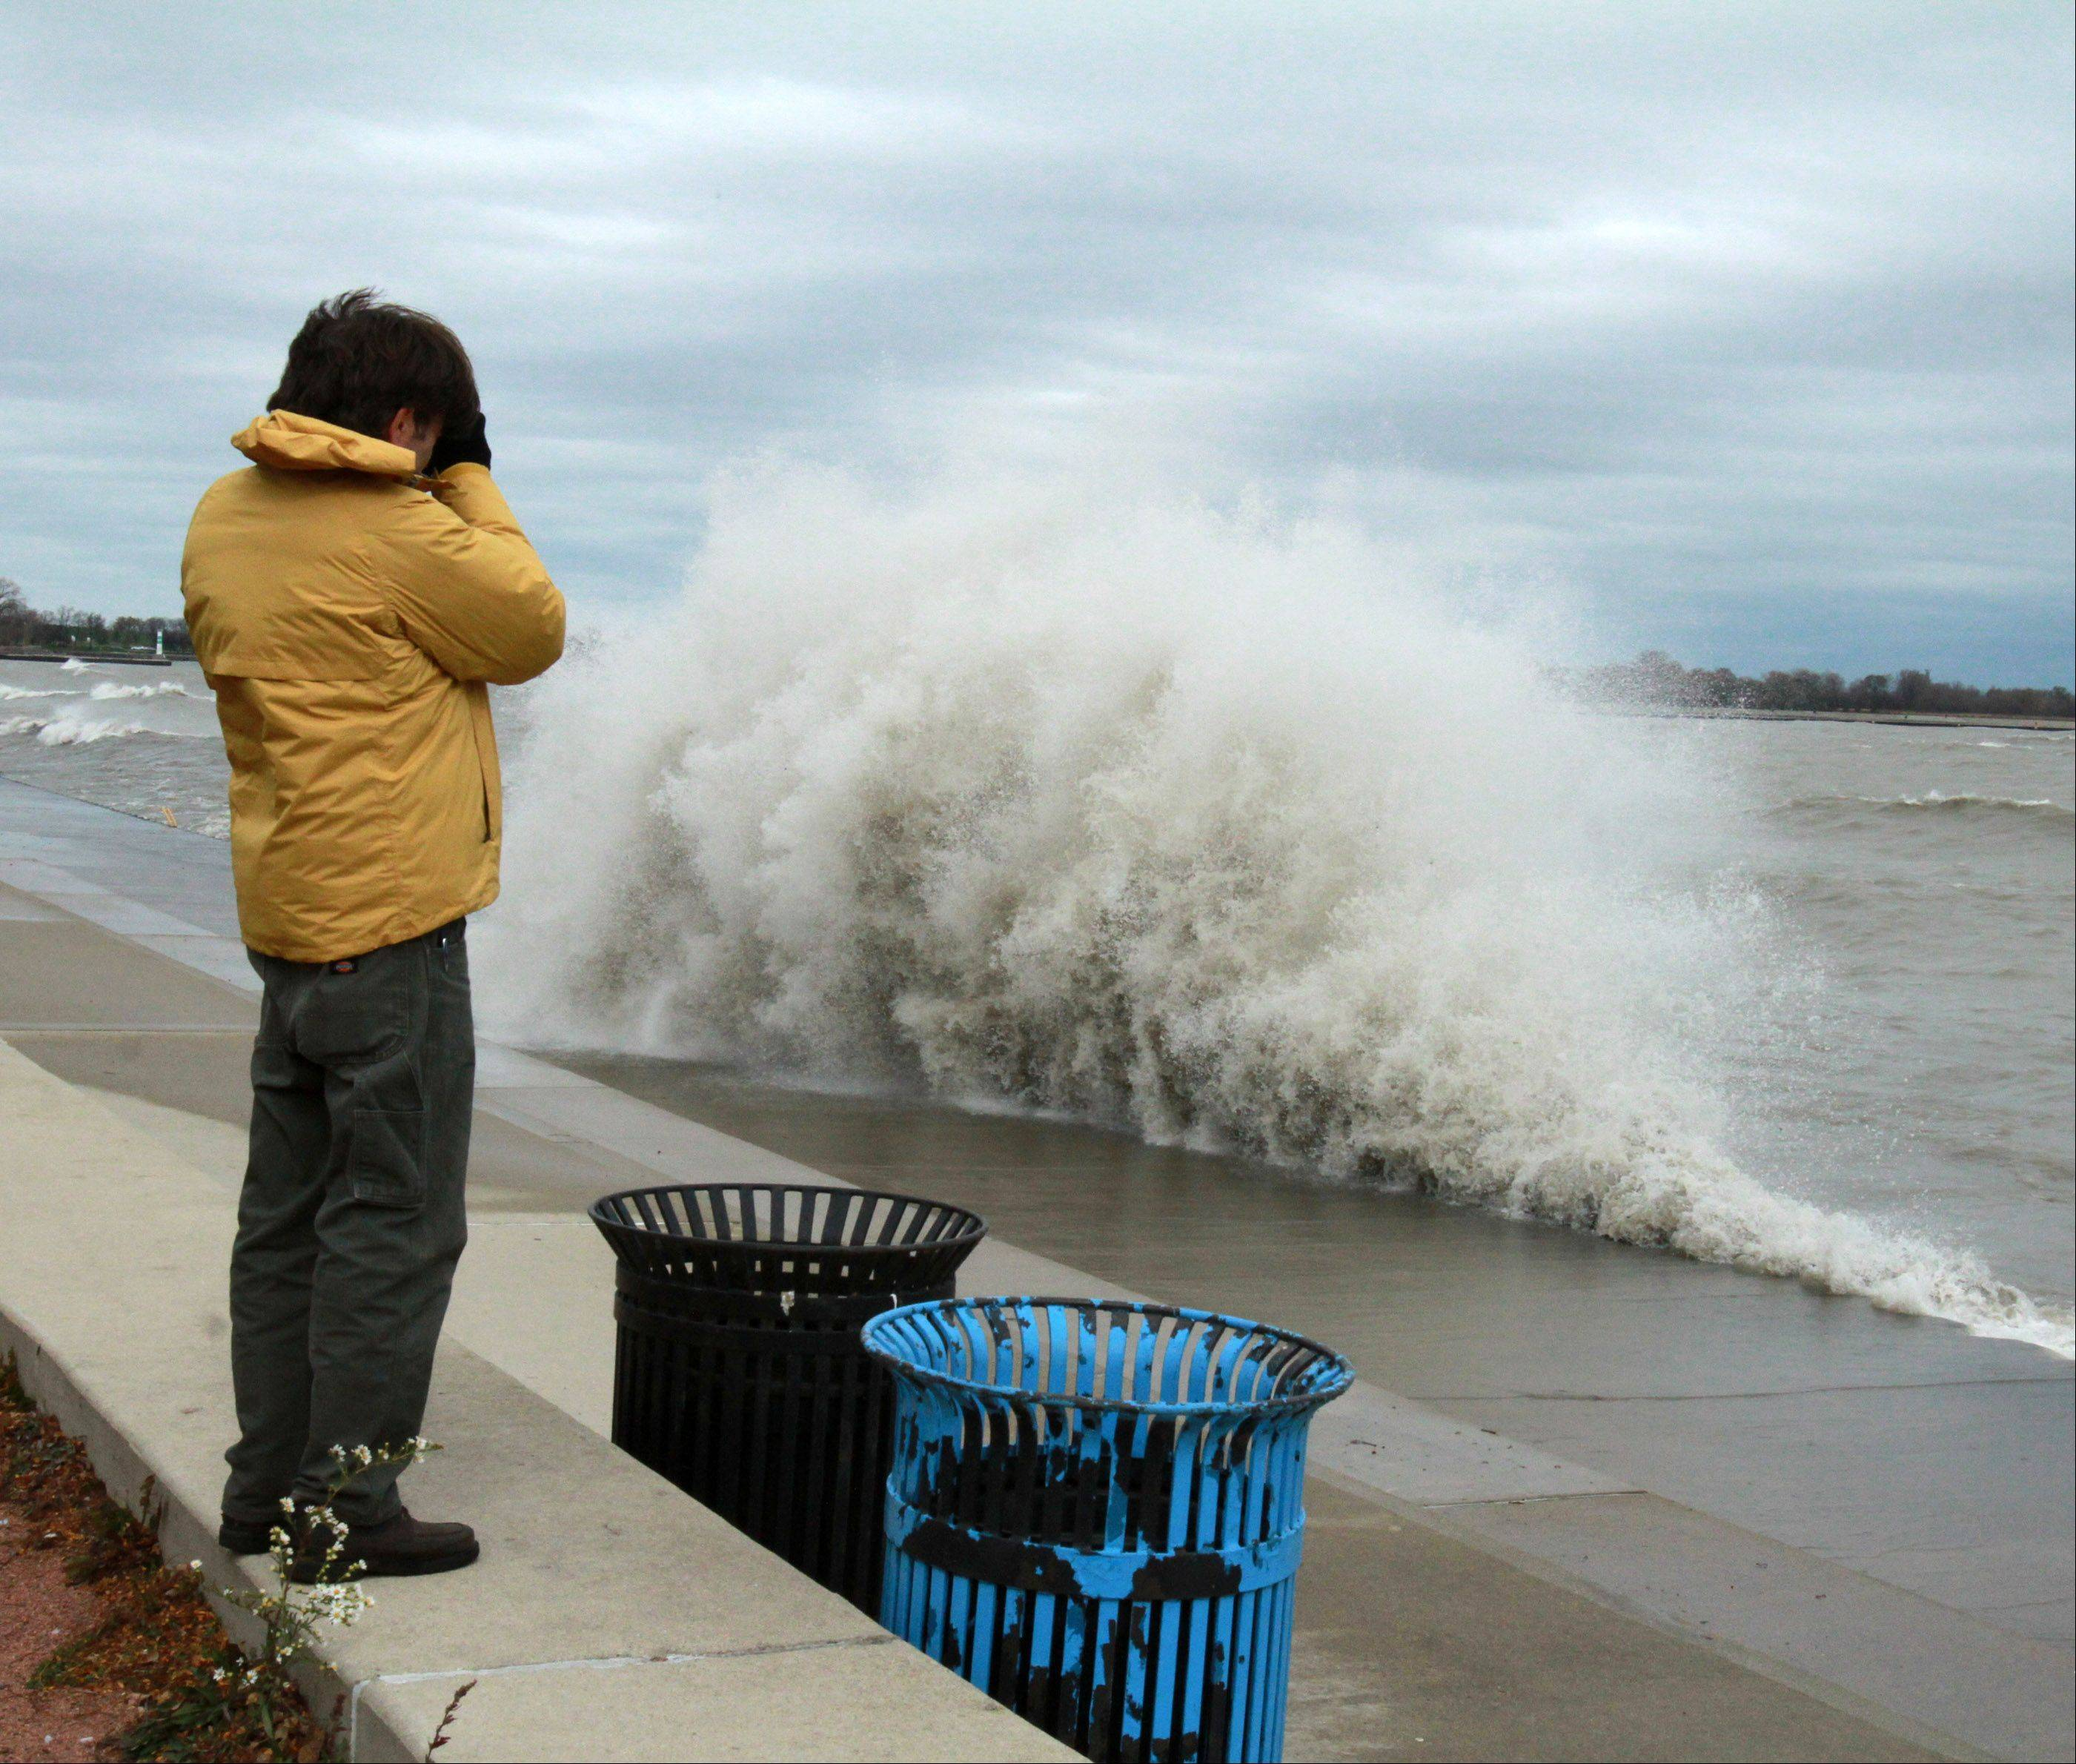 A photographer takes pictures near Sydney R. Marovitz Golf Course as giant waves batter Lake Michigan shoreline in Chicago on Tuesday, October 30.